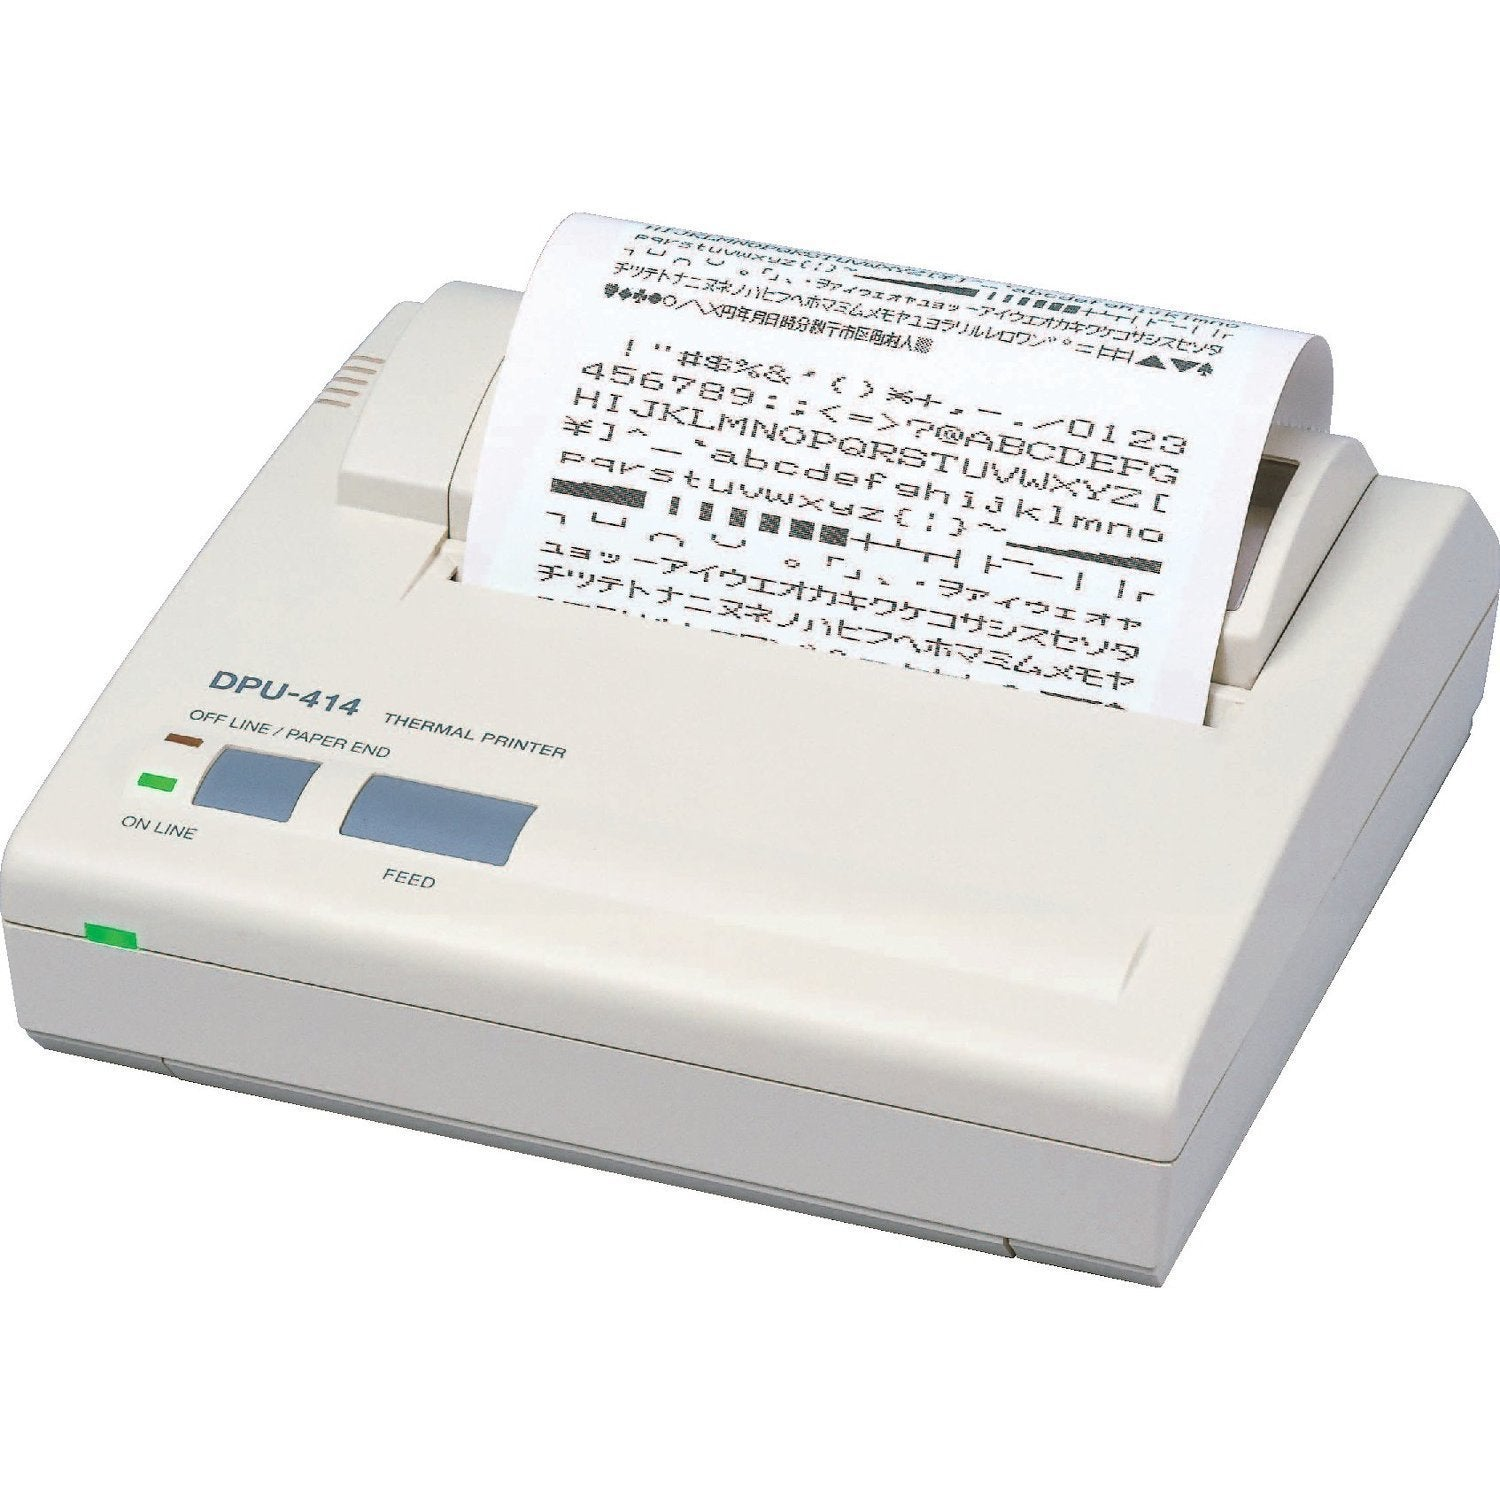 Seiko DPU414 Direct Thermal Printer - Monochrome - Portable - Receipt Print